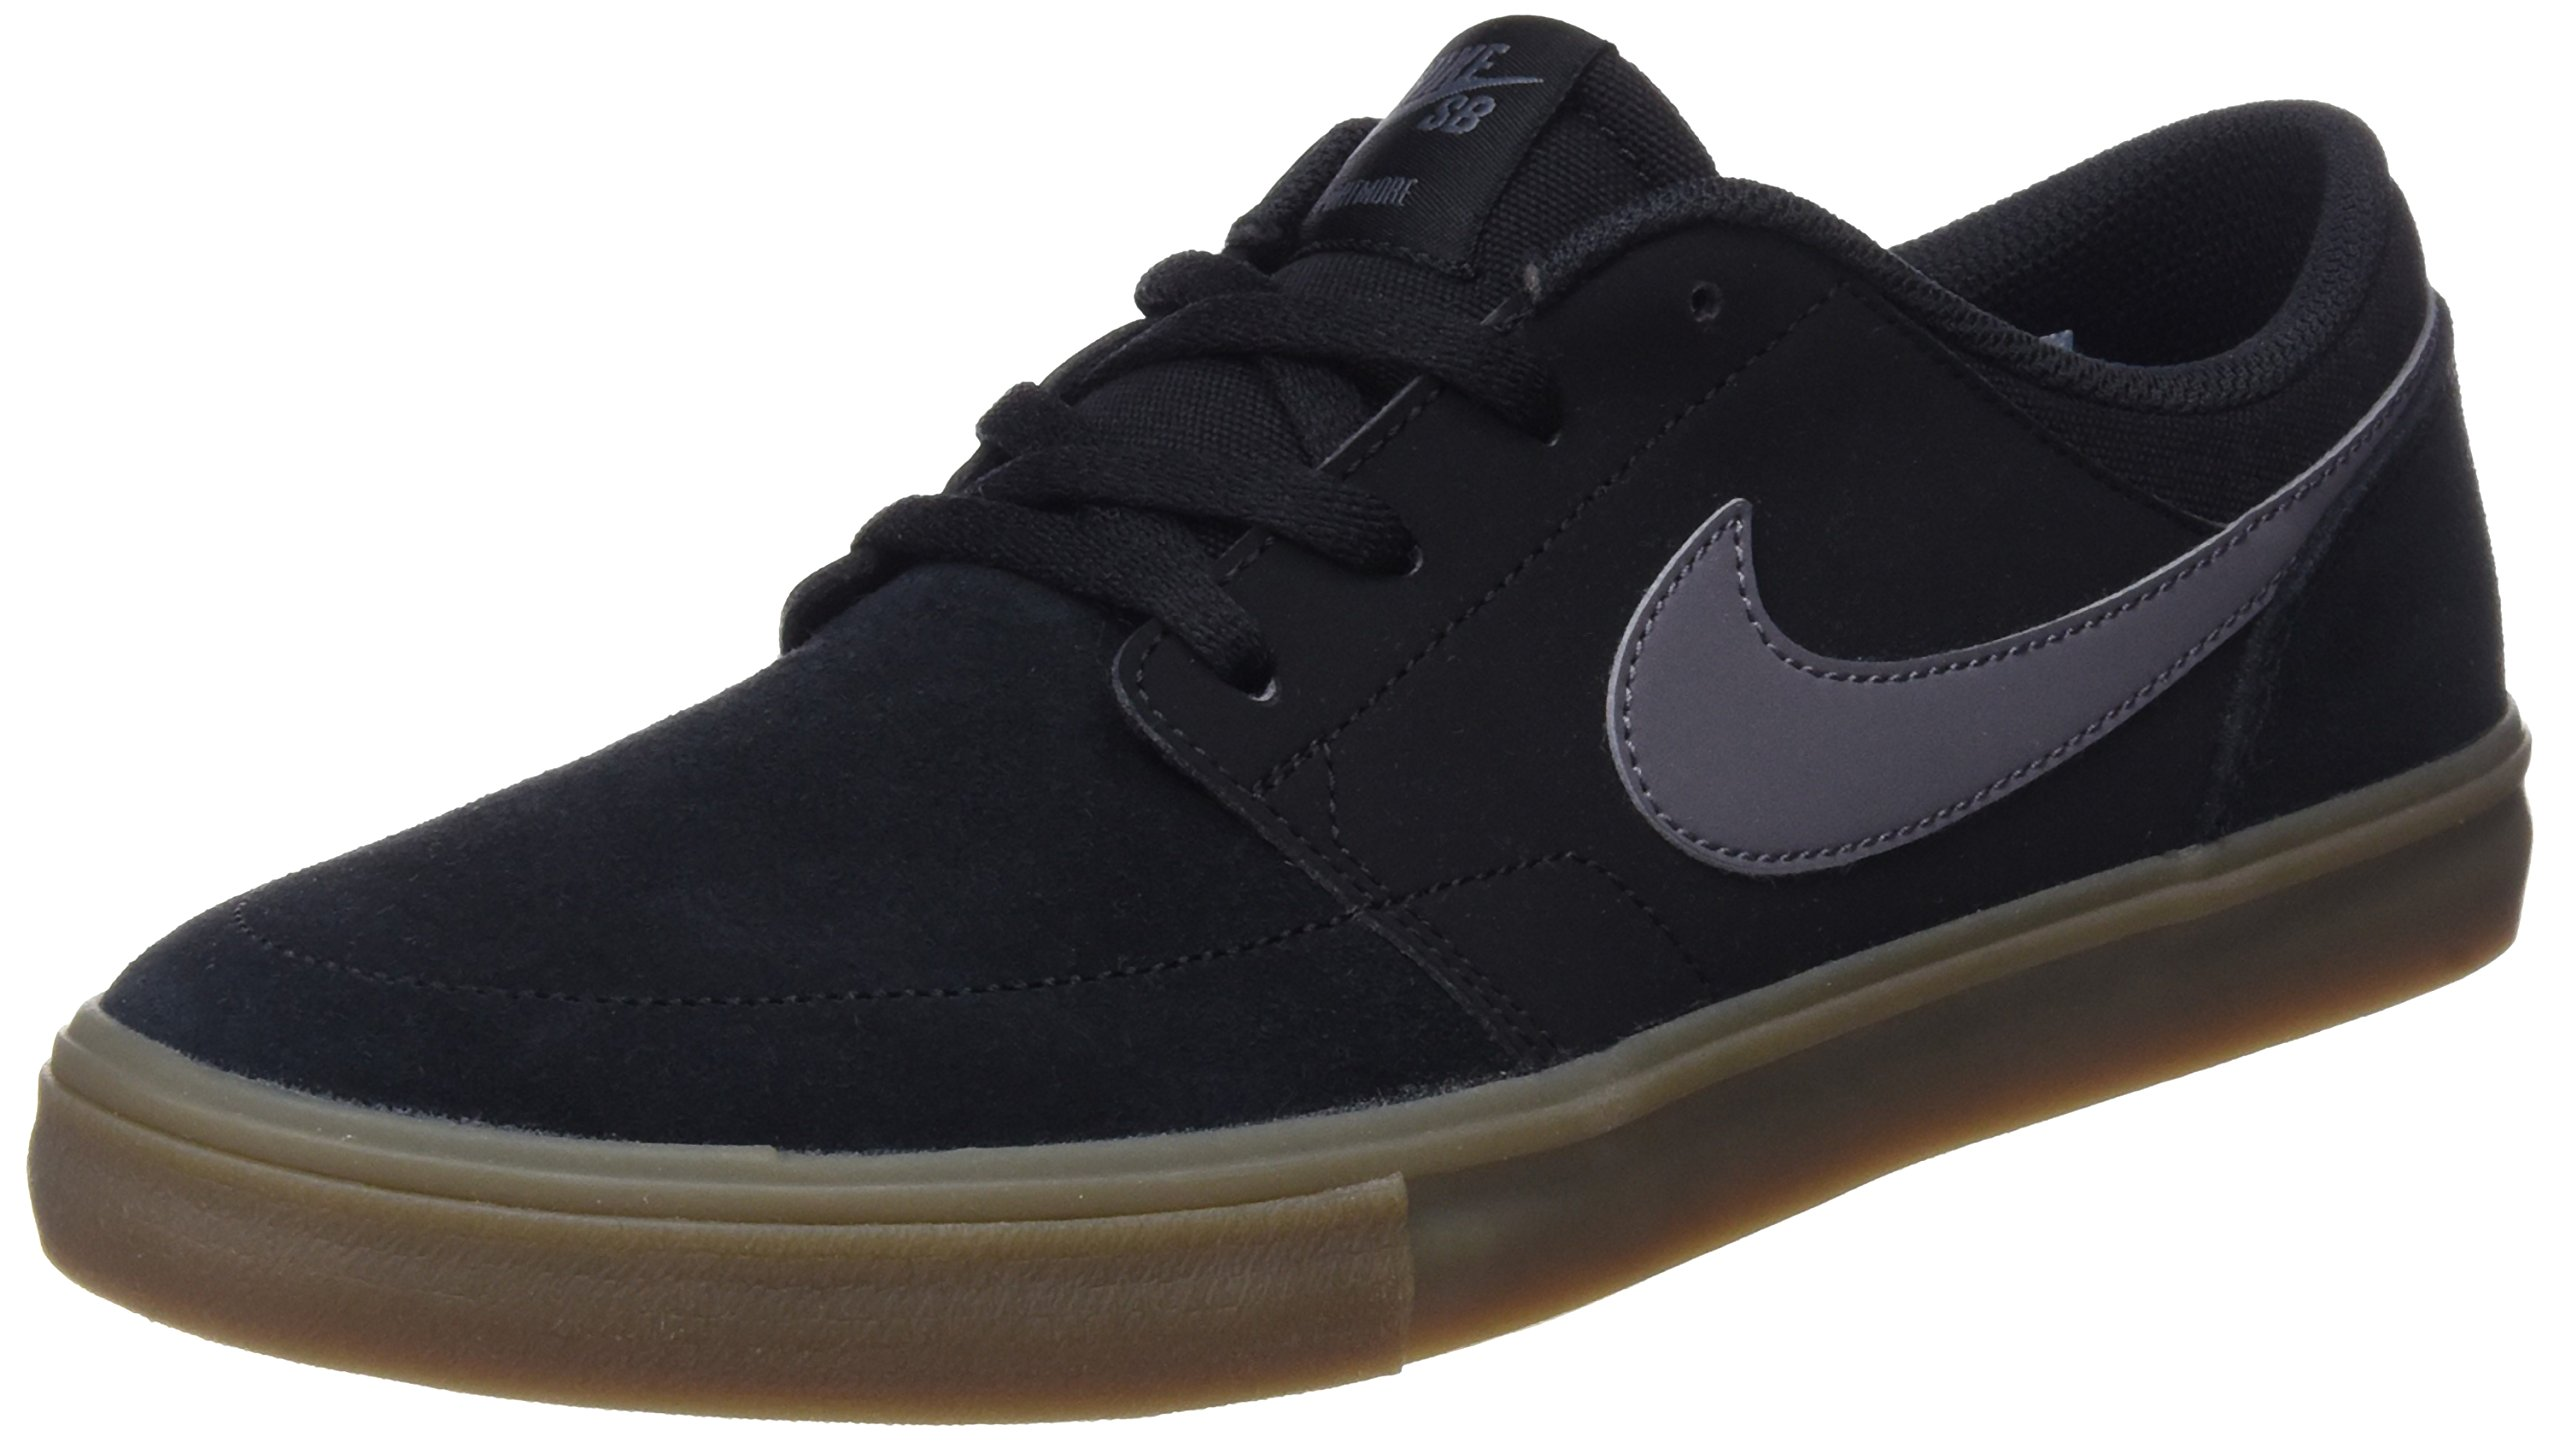 6799609da652d6 Galleon - Nike Men's SB Portmore II Solar Skate Shoe Black/Dark Grey/Gum 11  M US